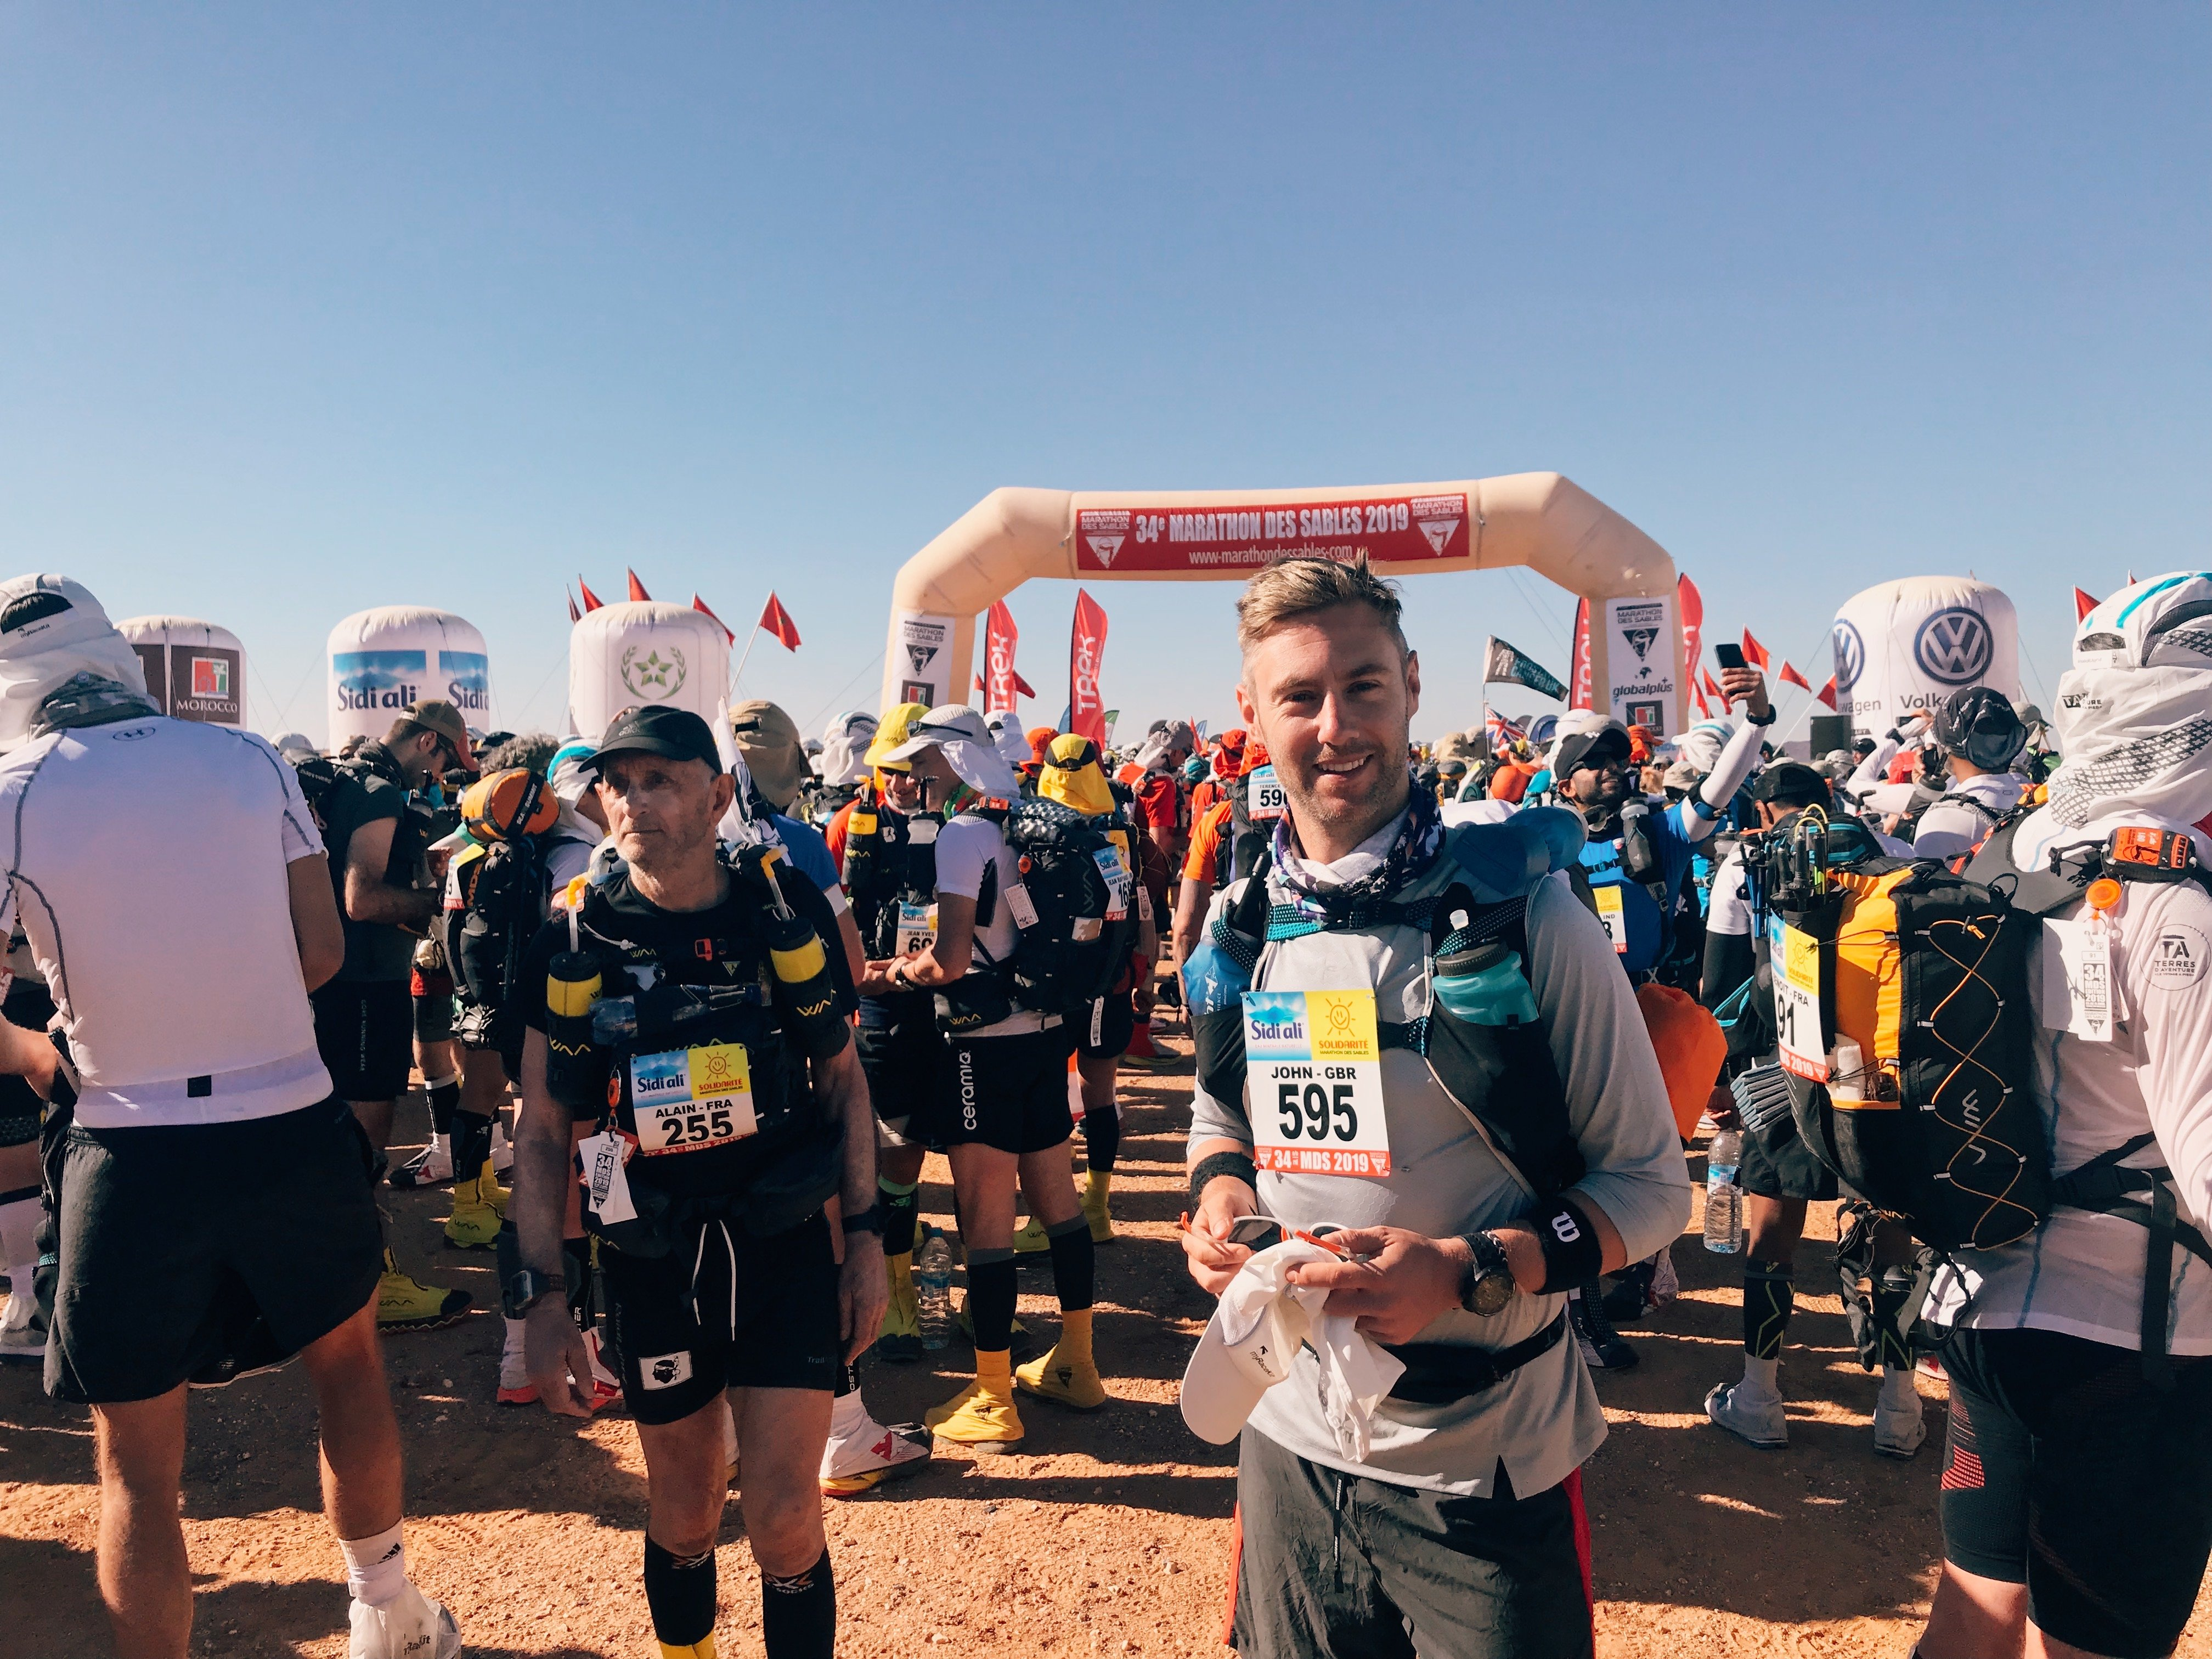 Day 1 Marathon Des Sables